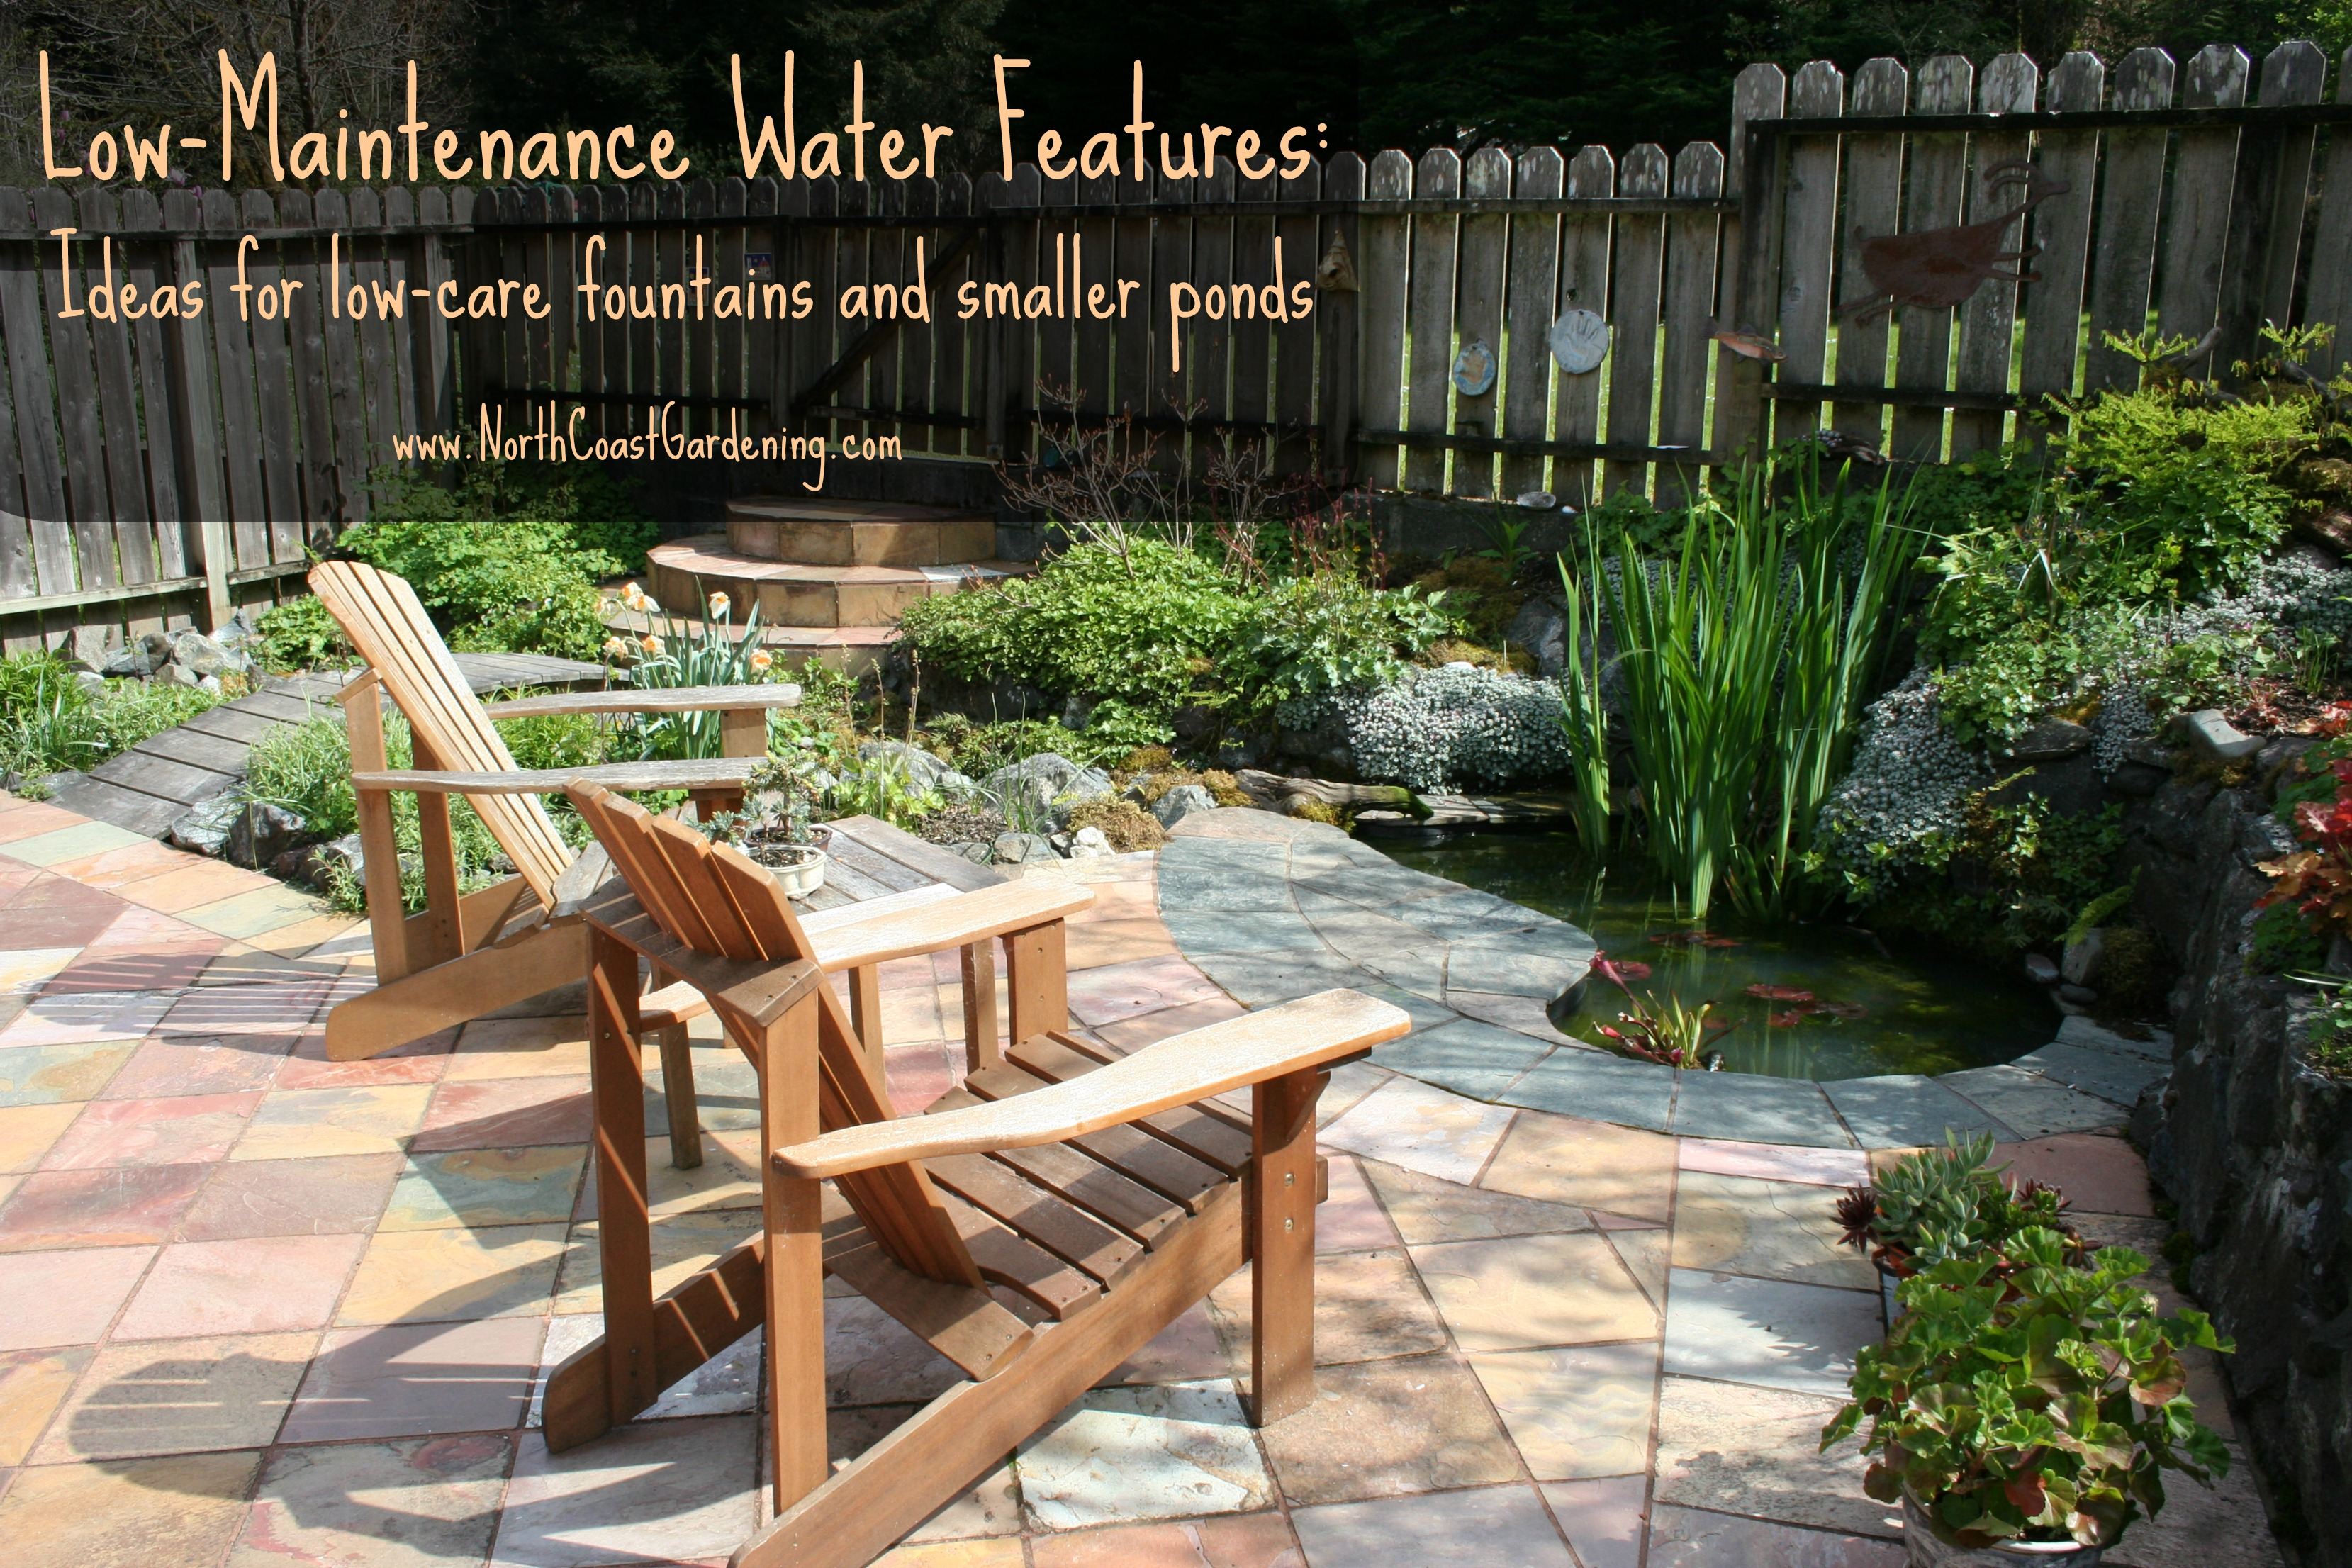 Low Maintenance Water Features Downsizing Ponds And Fountains North Coast Gardening